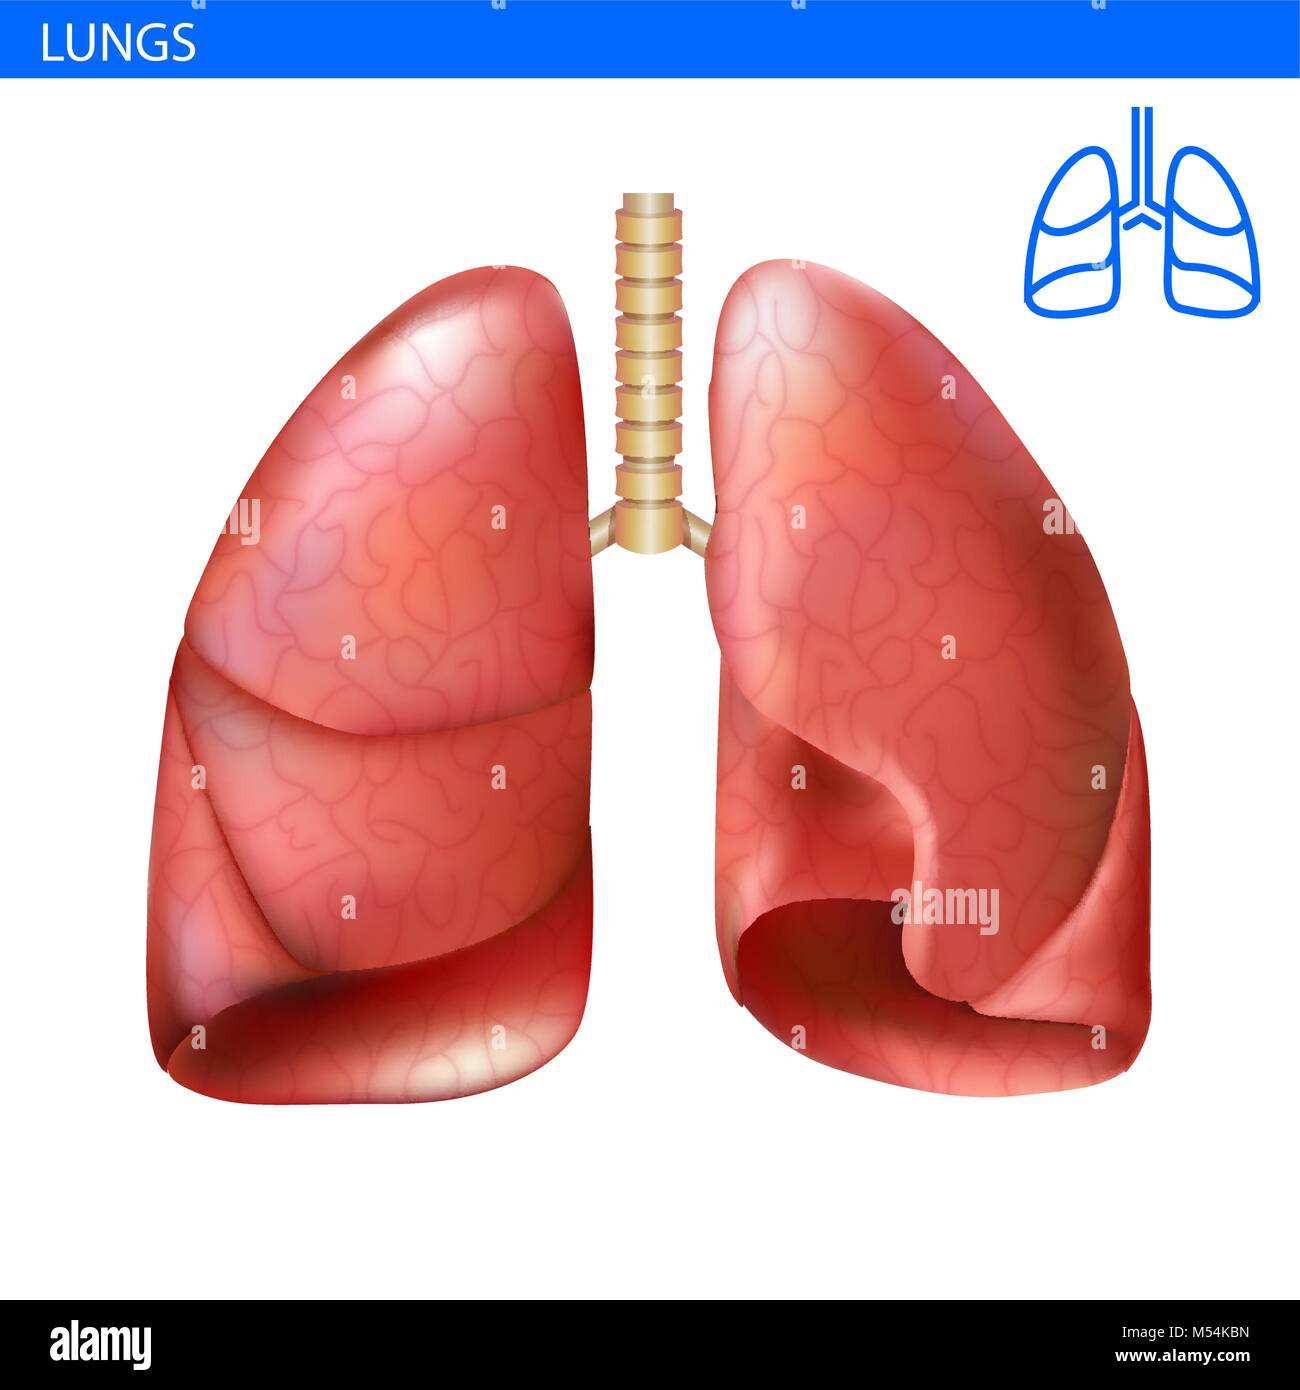 Human lungs anatomy realistic illustration front view in detail ...